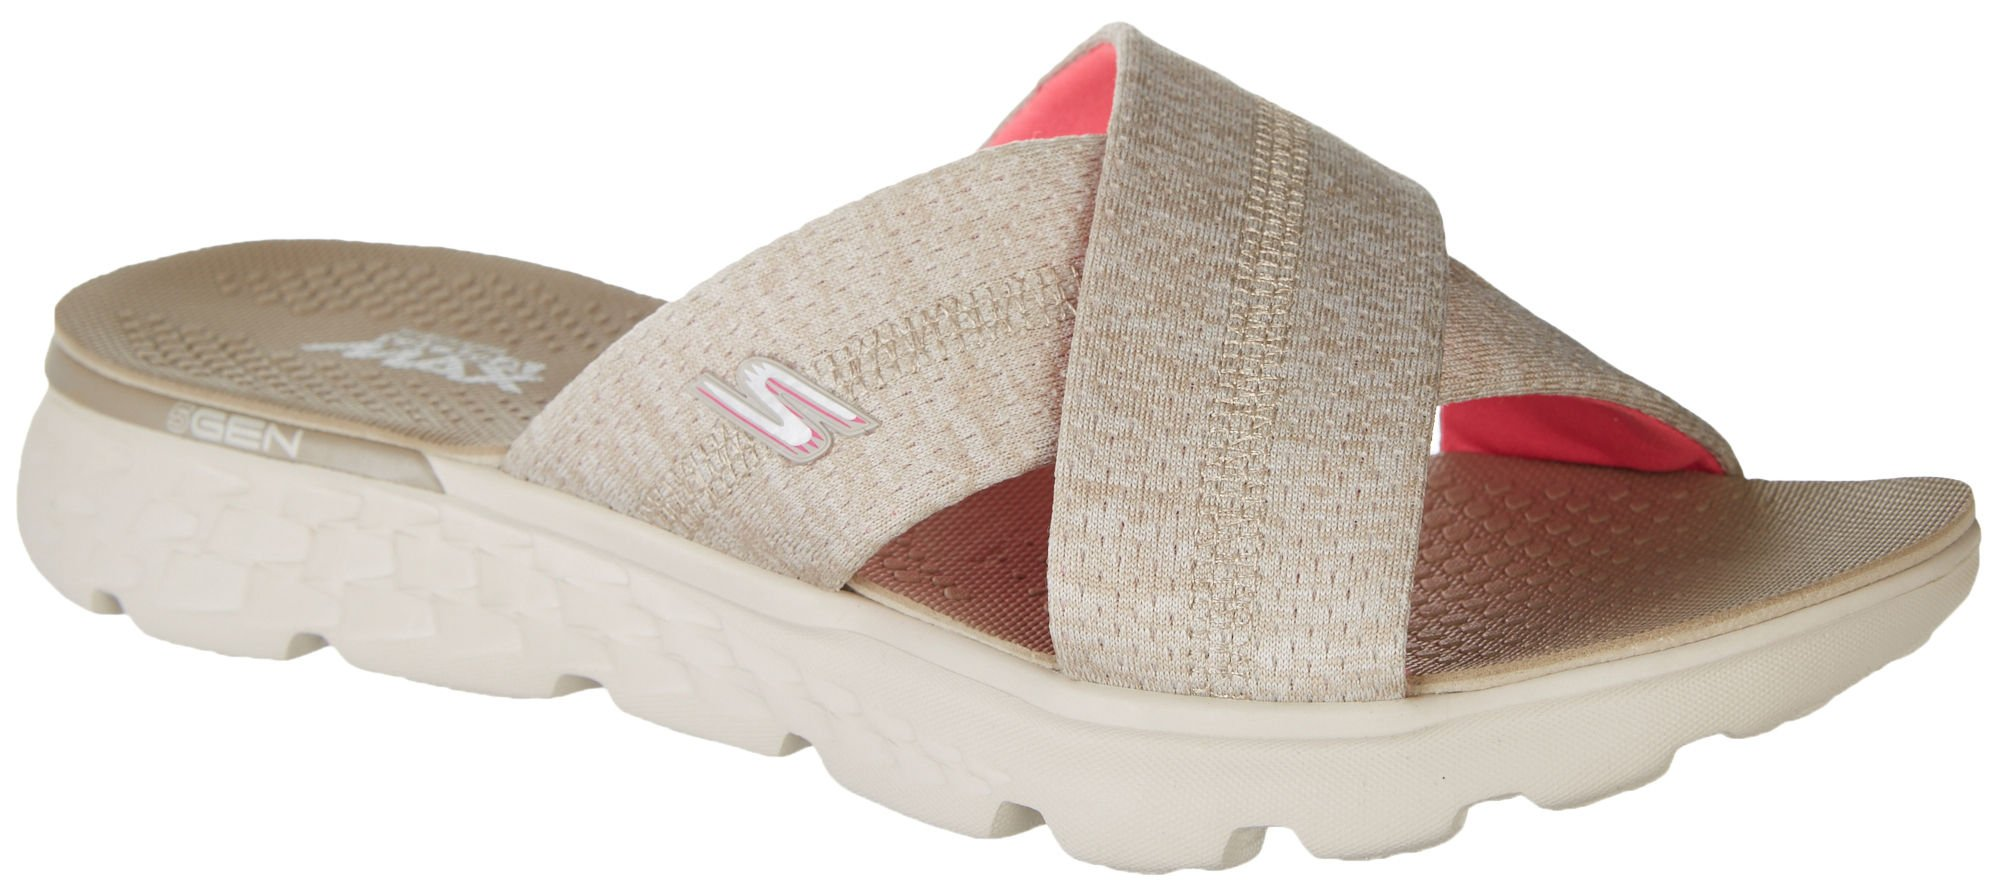 Skechers On The Go 400 Blissful Womens Slide Sandals Taupe 10